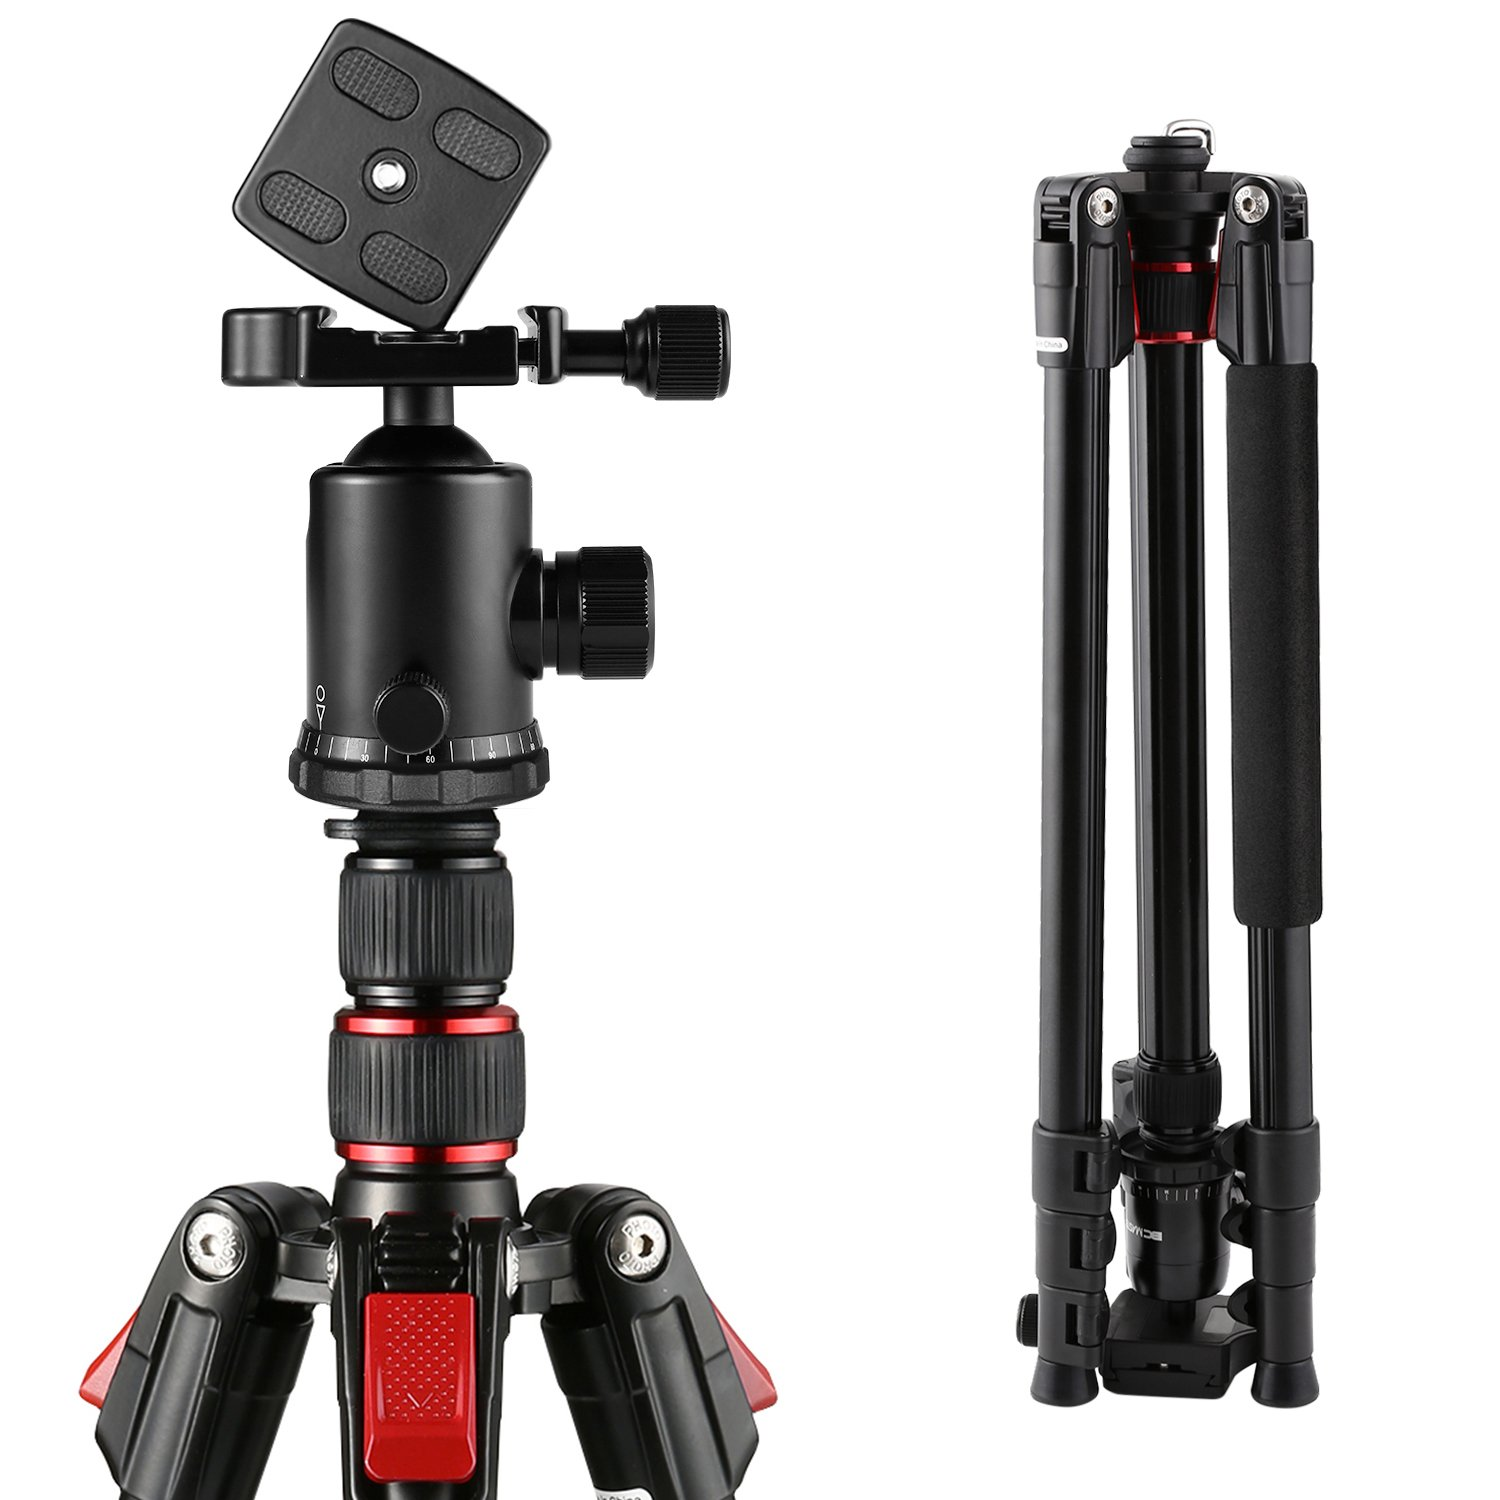 BC Master Camera Tripod Dslr, 75-inch Tall and Portable Aluminum Alloy TA333 with Carrying Bag, 2018 NEW 360°Ball Head, Bubble Level, Quick Release Plate for Canon Nikon, Weight: 3.17lbs/1.44Kg